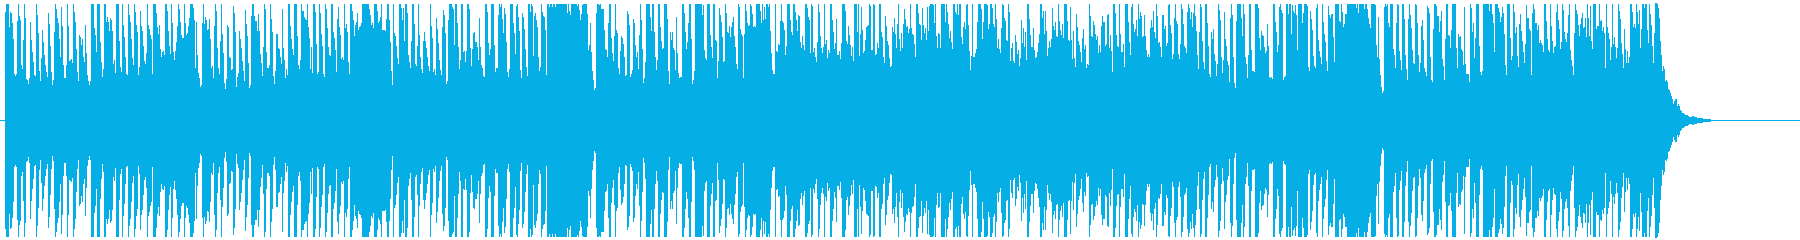 Fantastic and cute BGM's reproduced waveform